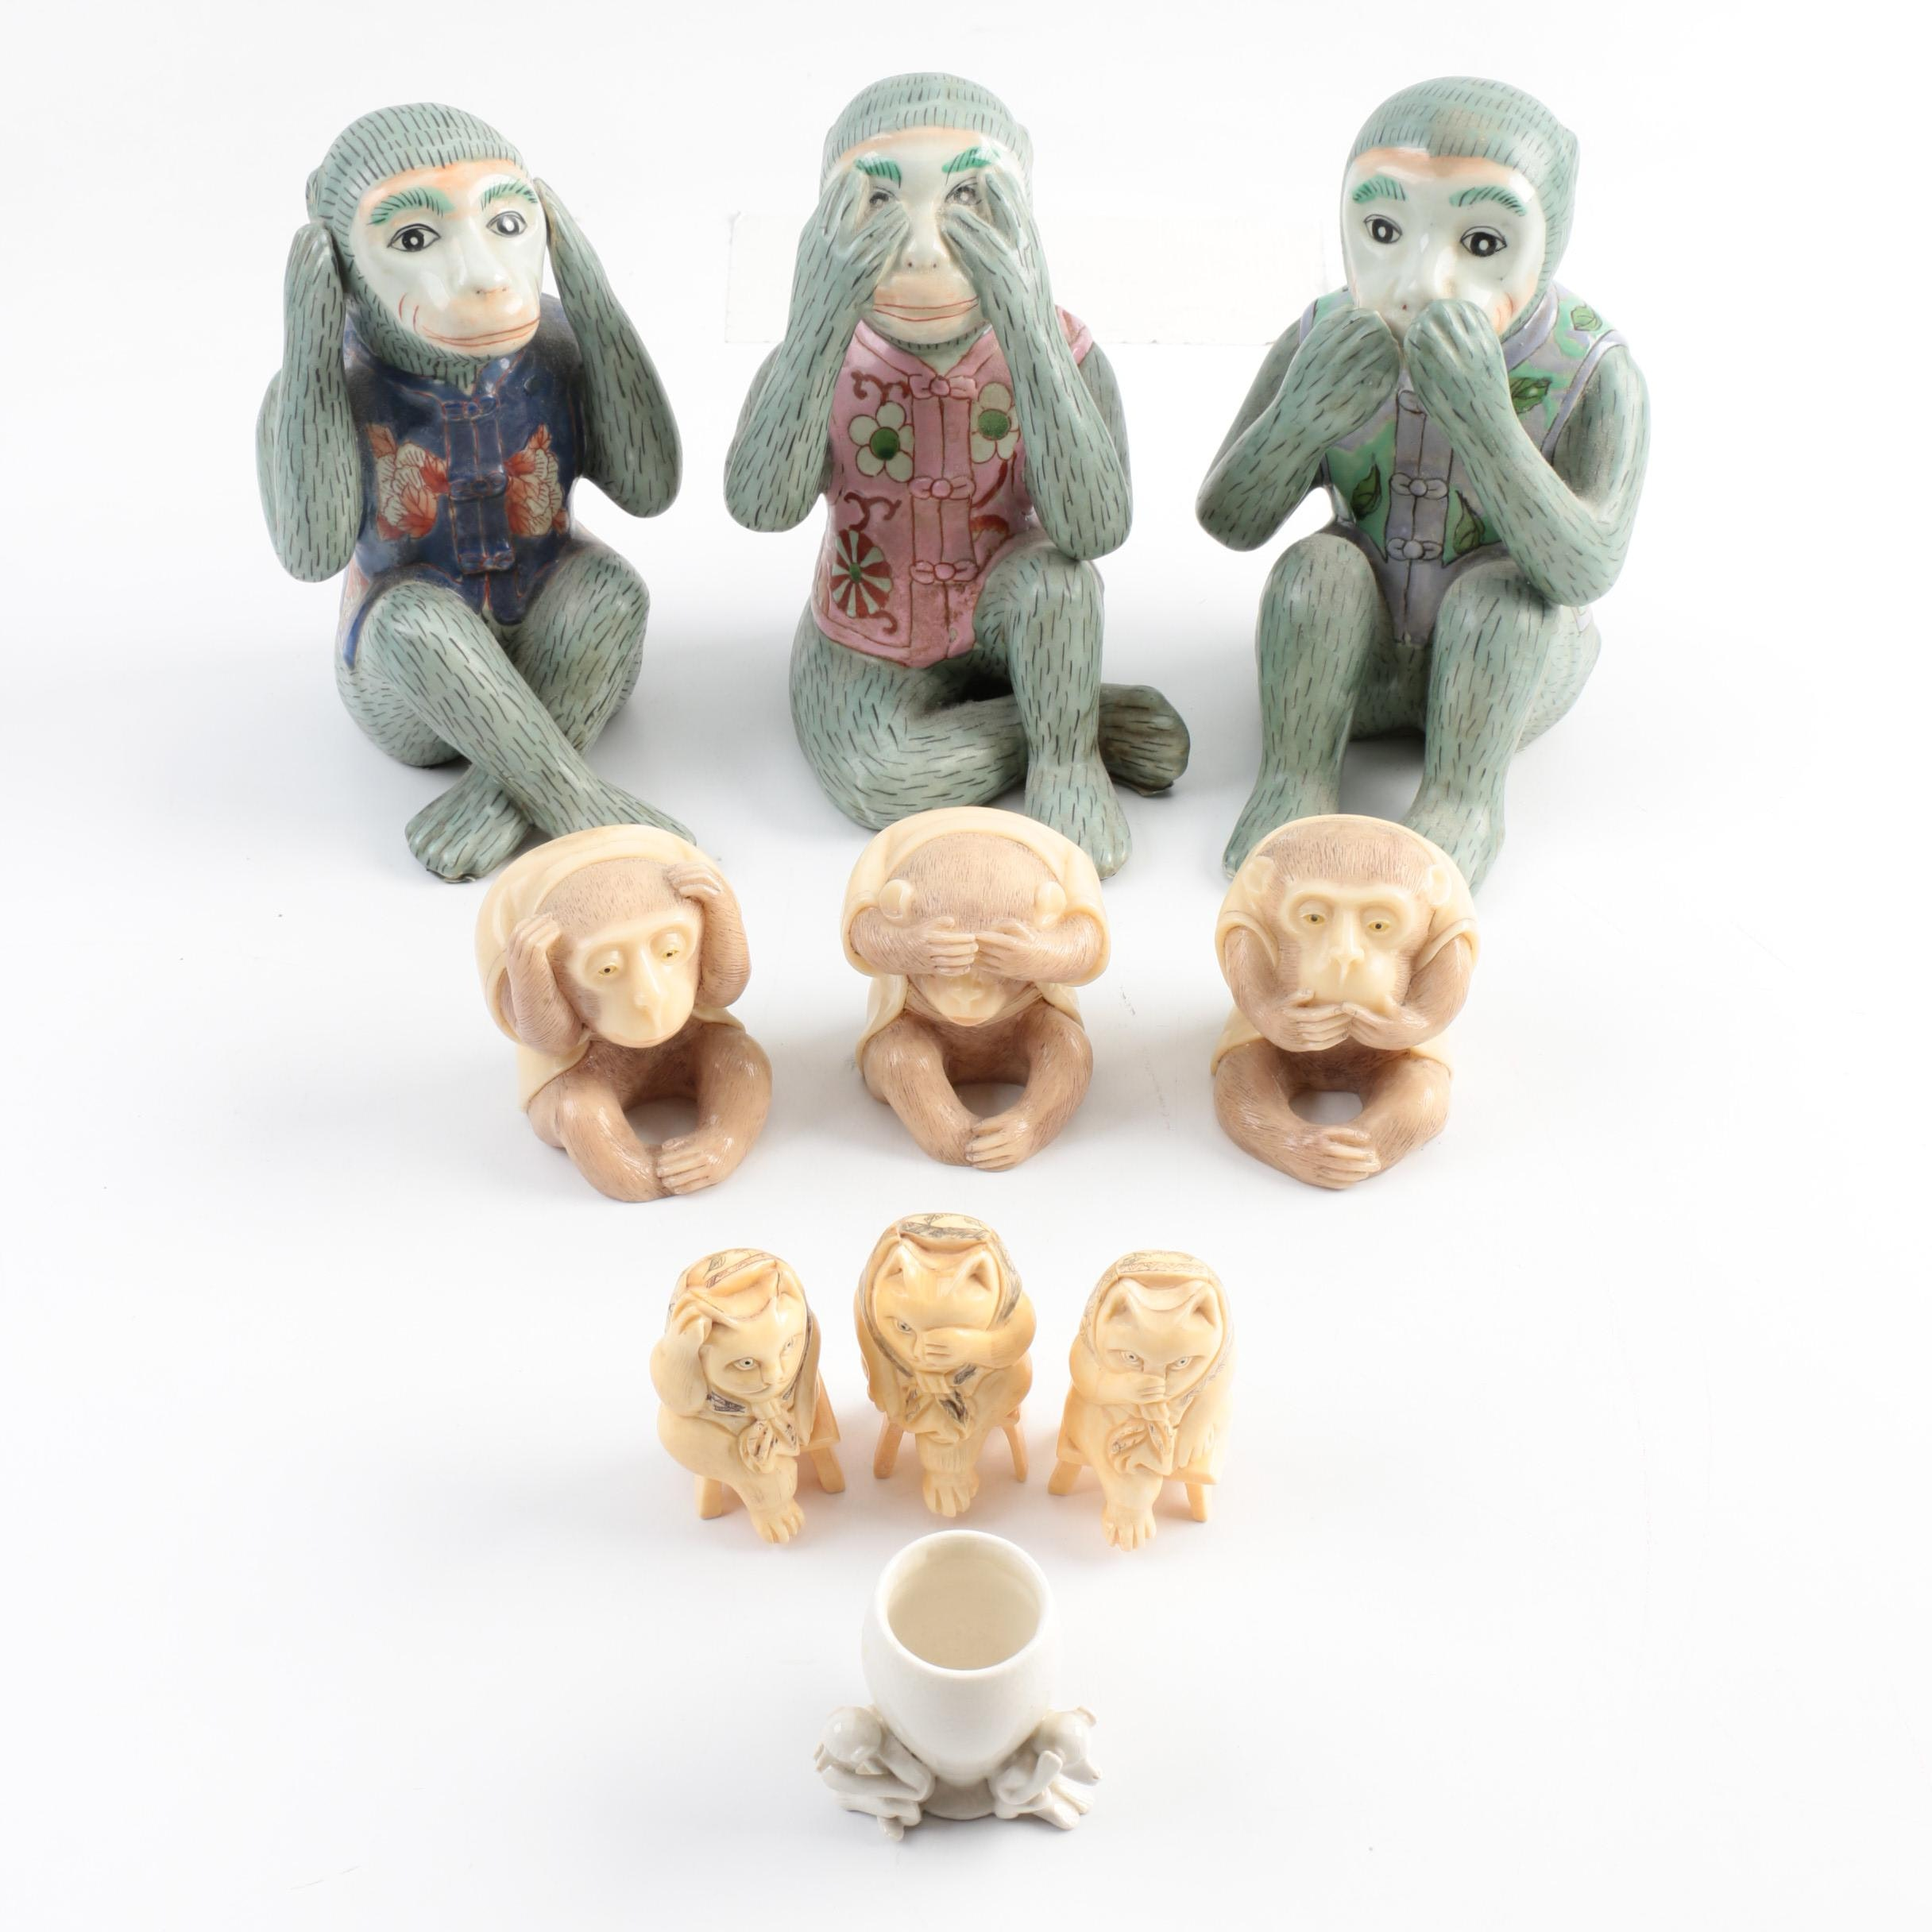 """Monkey and Cat Ceramic and Bone Figurines in """"Wise Monkey"""" Poses"""